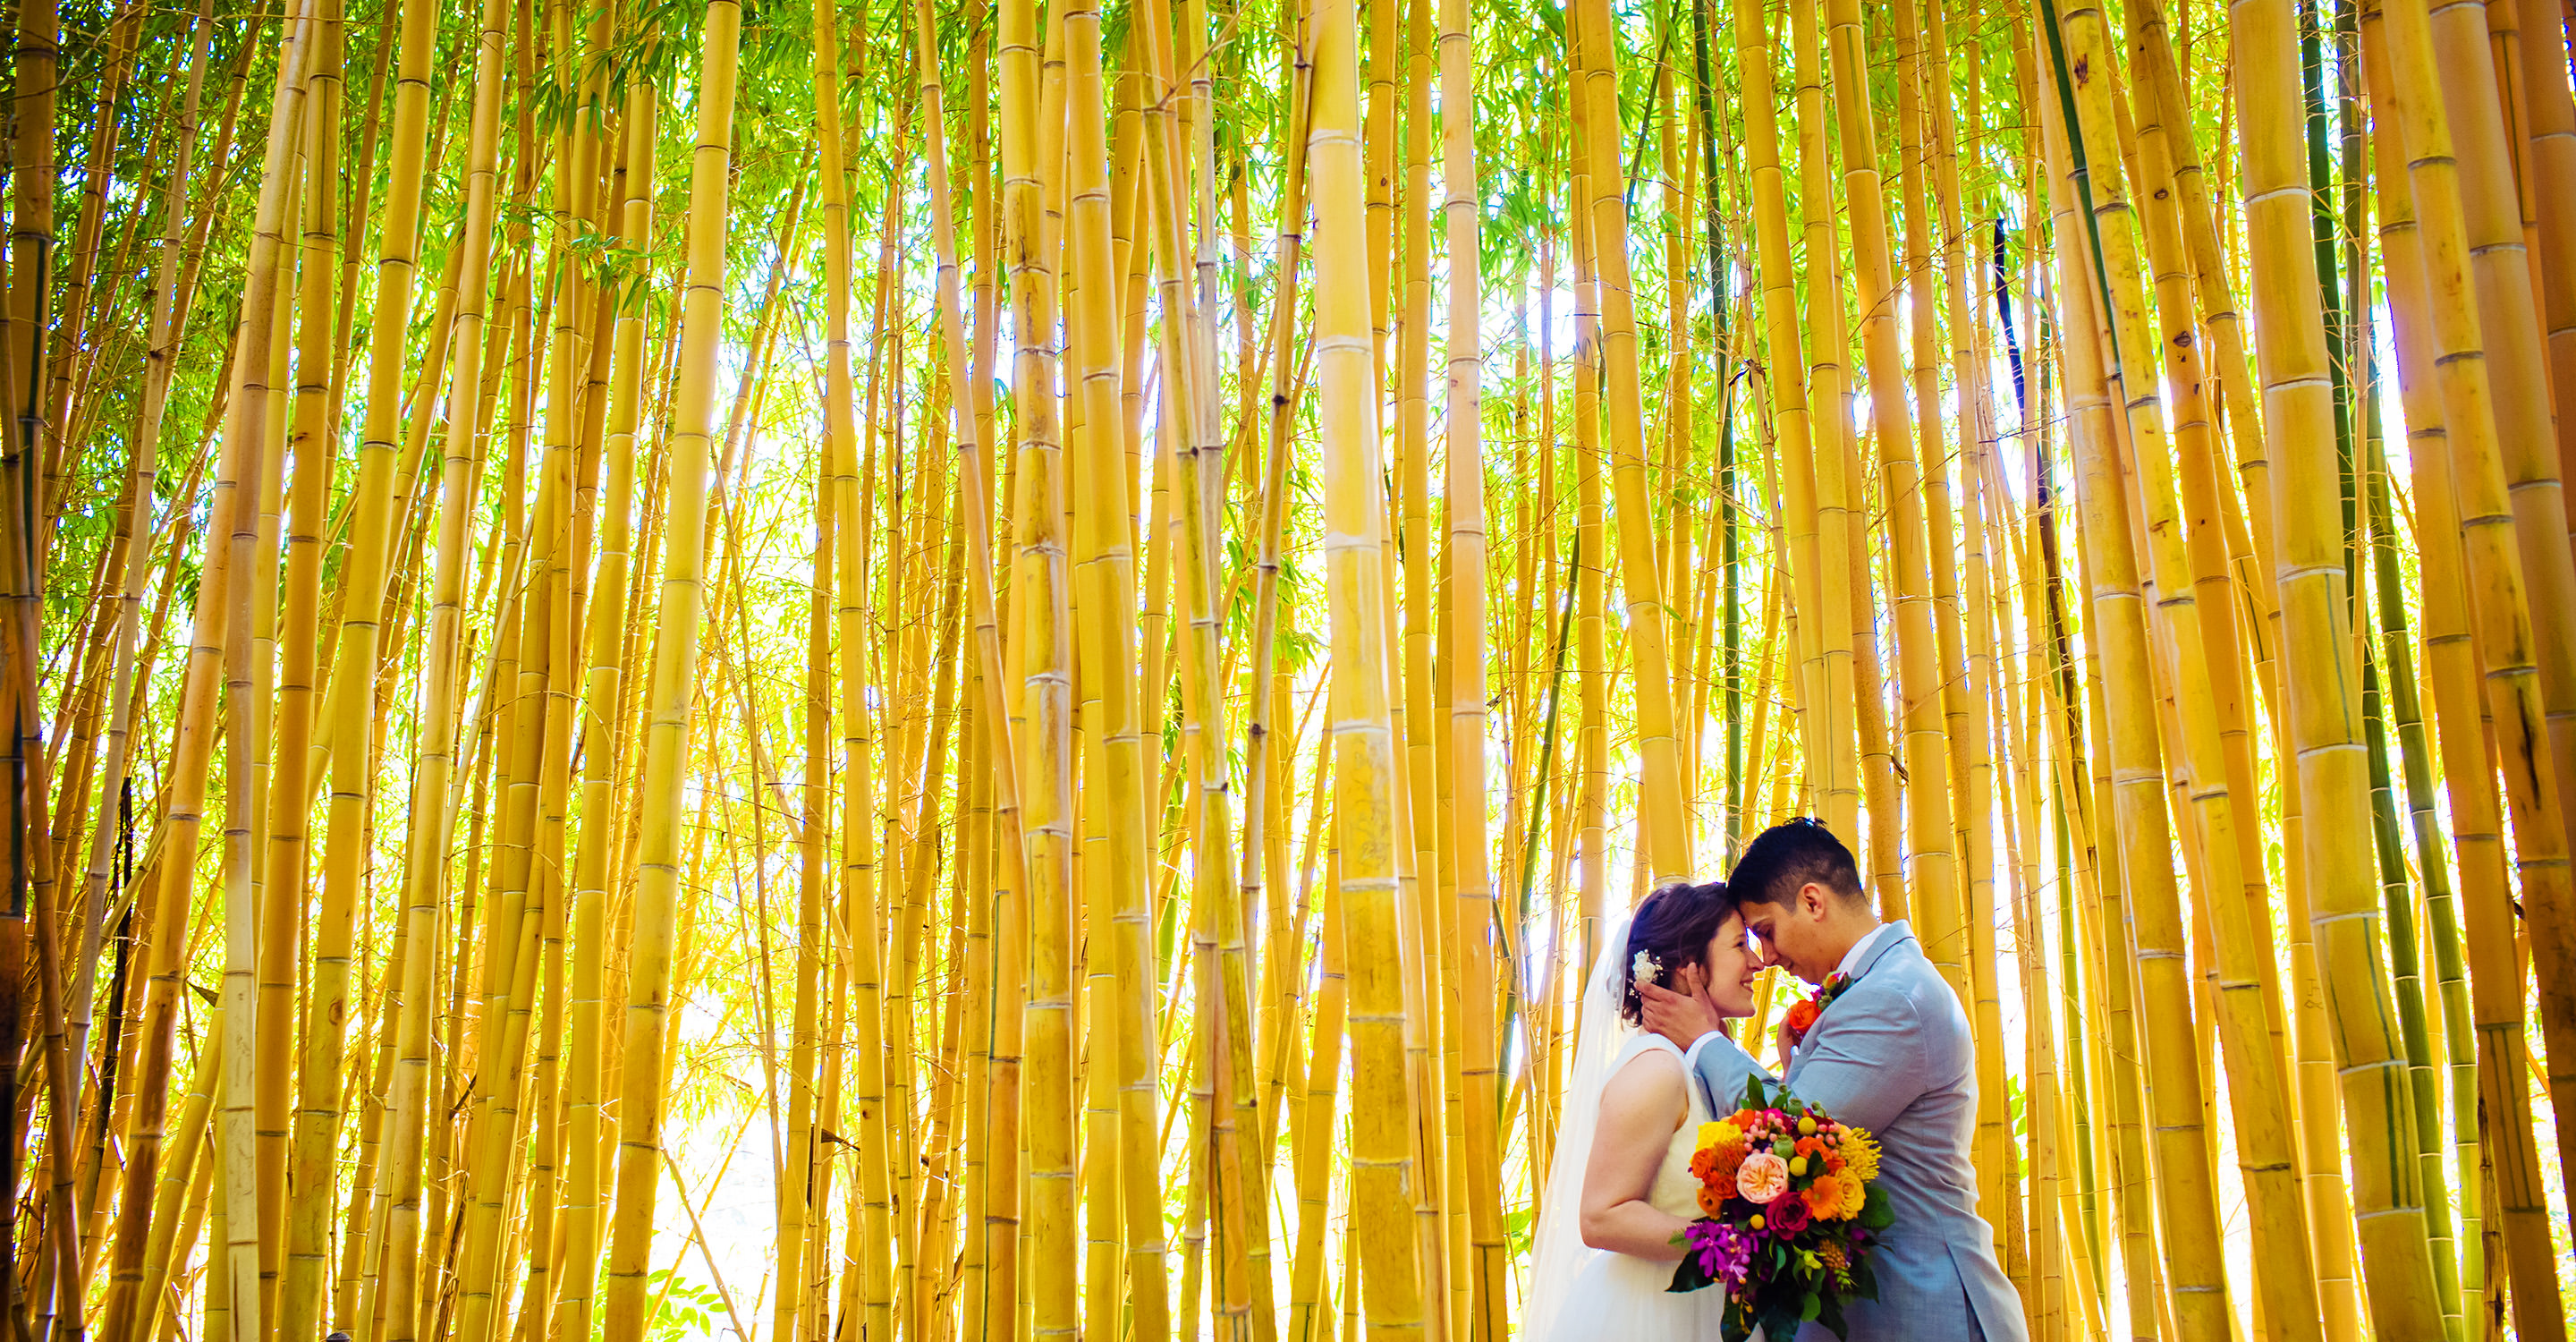 San Diego couple gets married at the San Diego safari park among the bamboo trees photo by Dennis mock wedding photographer